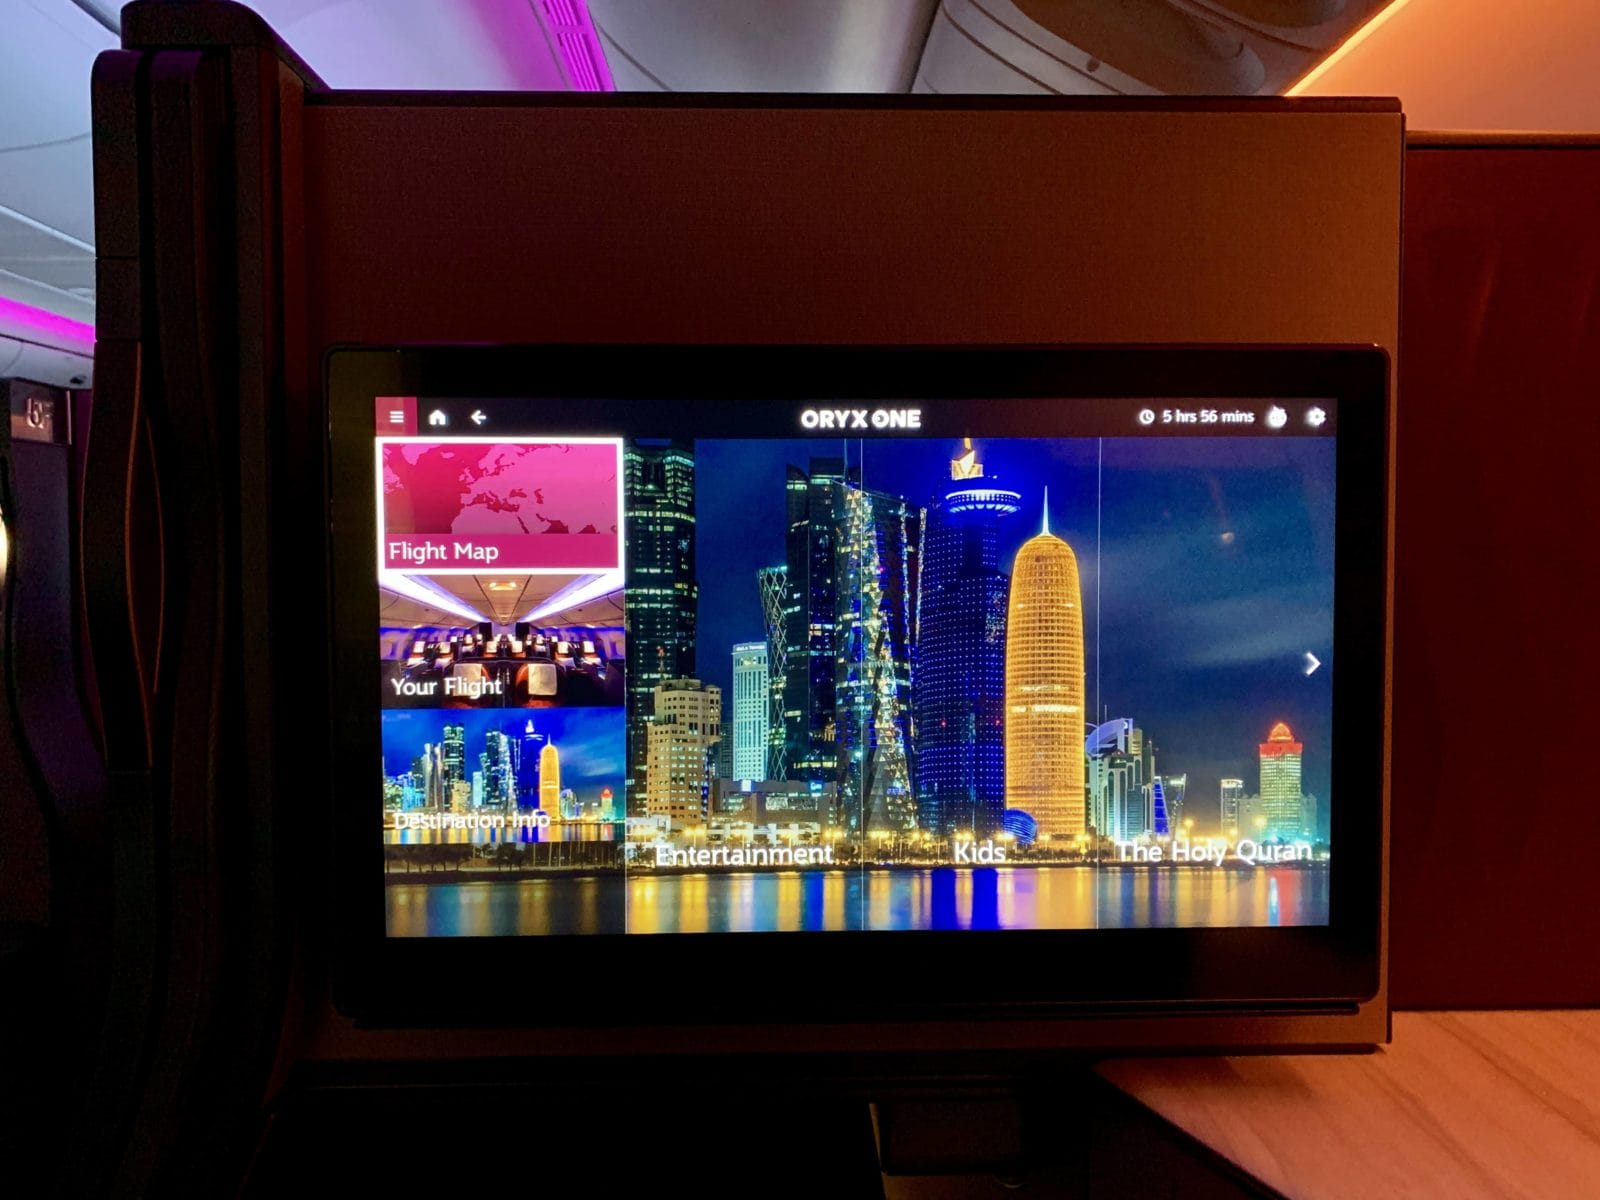 Qatar Airways Qsuite Boeing 777-300ER Entertainment